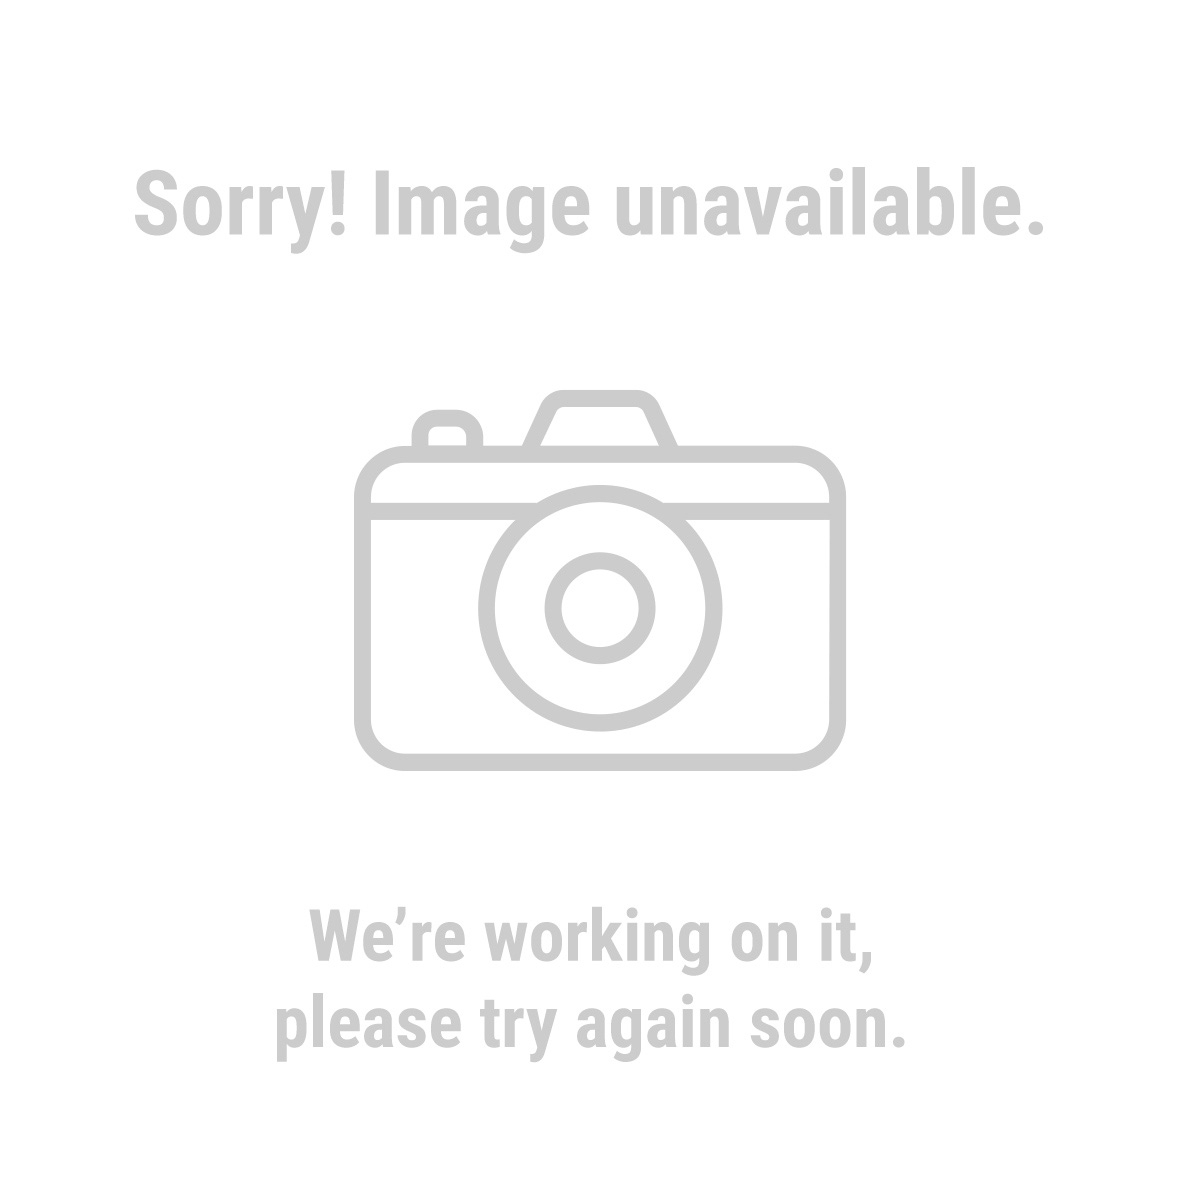 HARDY 62371 Split Leather Work Gloves with Cotton Back 5 Pr